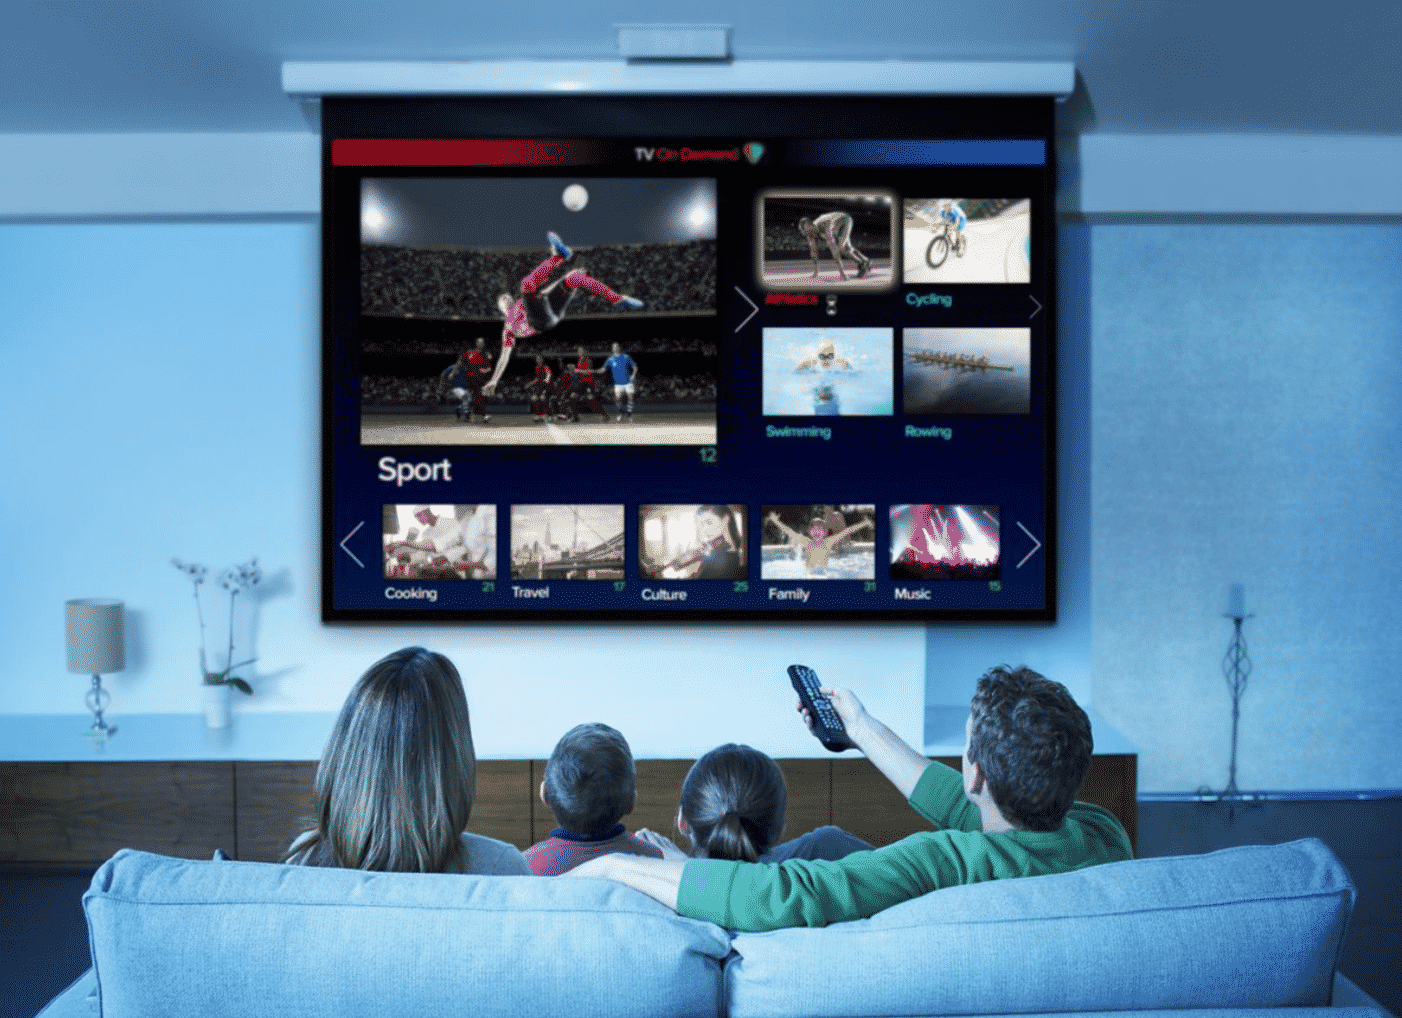 Best Live Streaming Options for Watching Your Favorite Sports